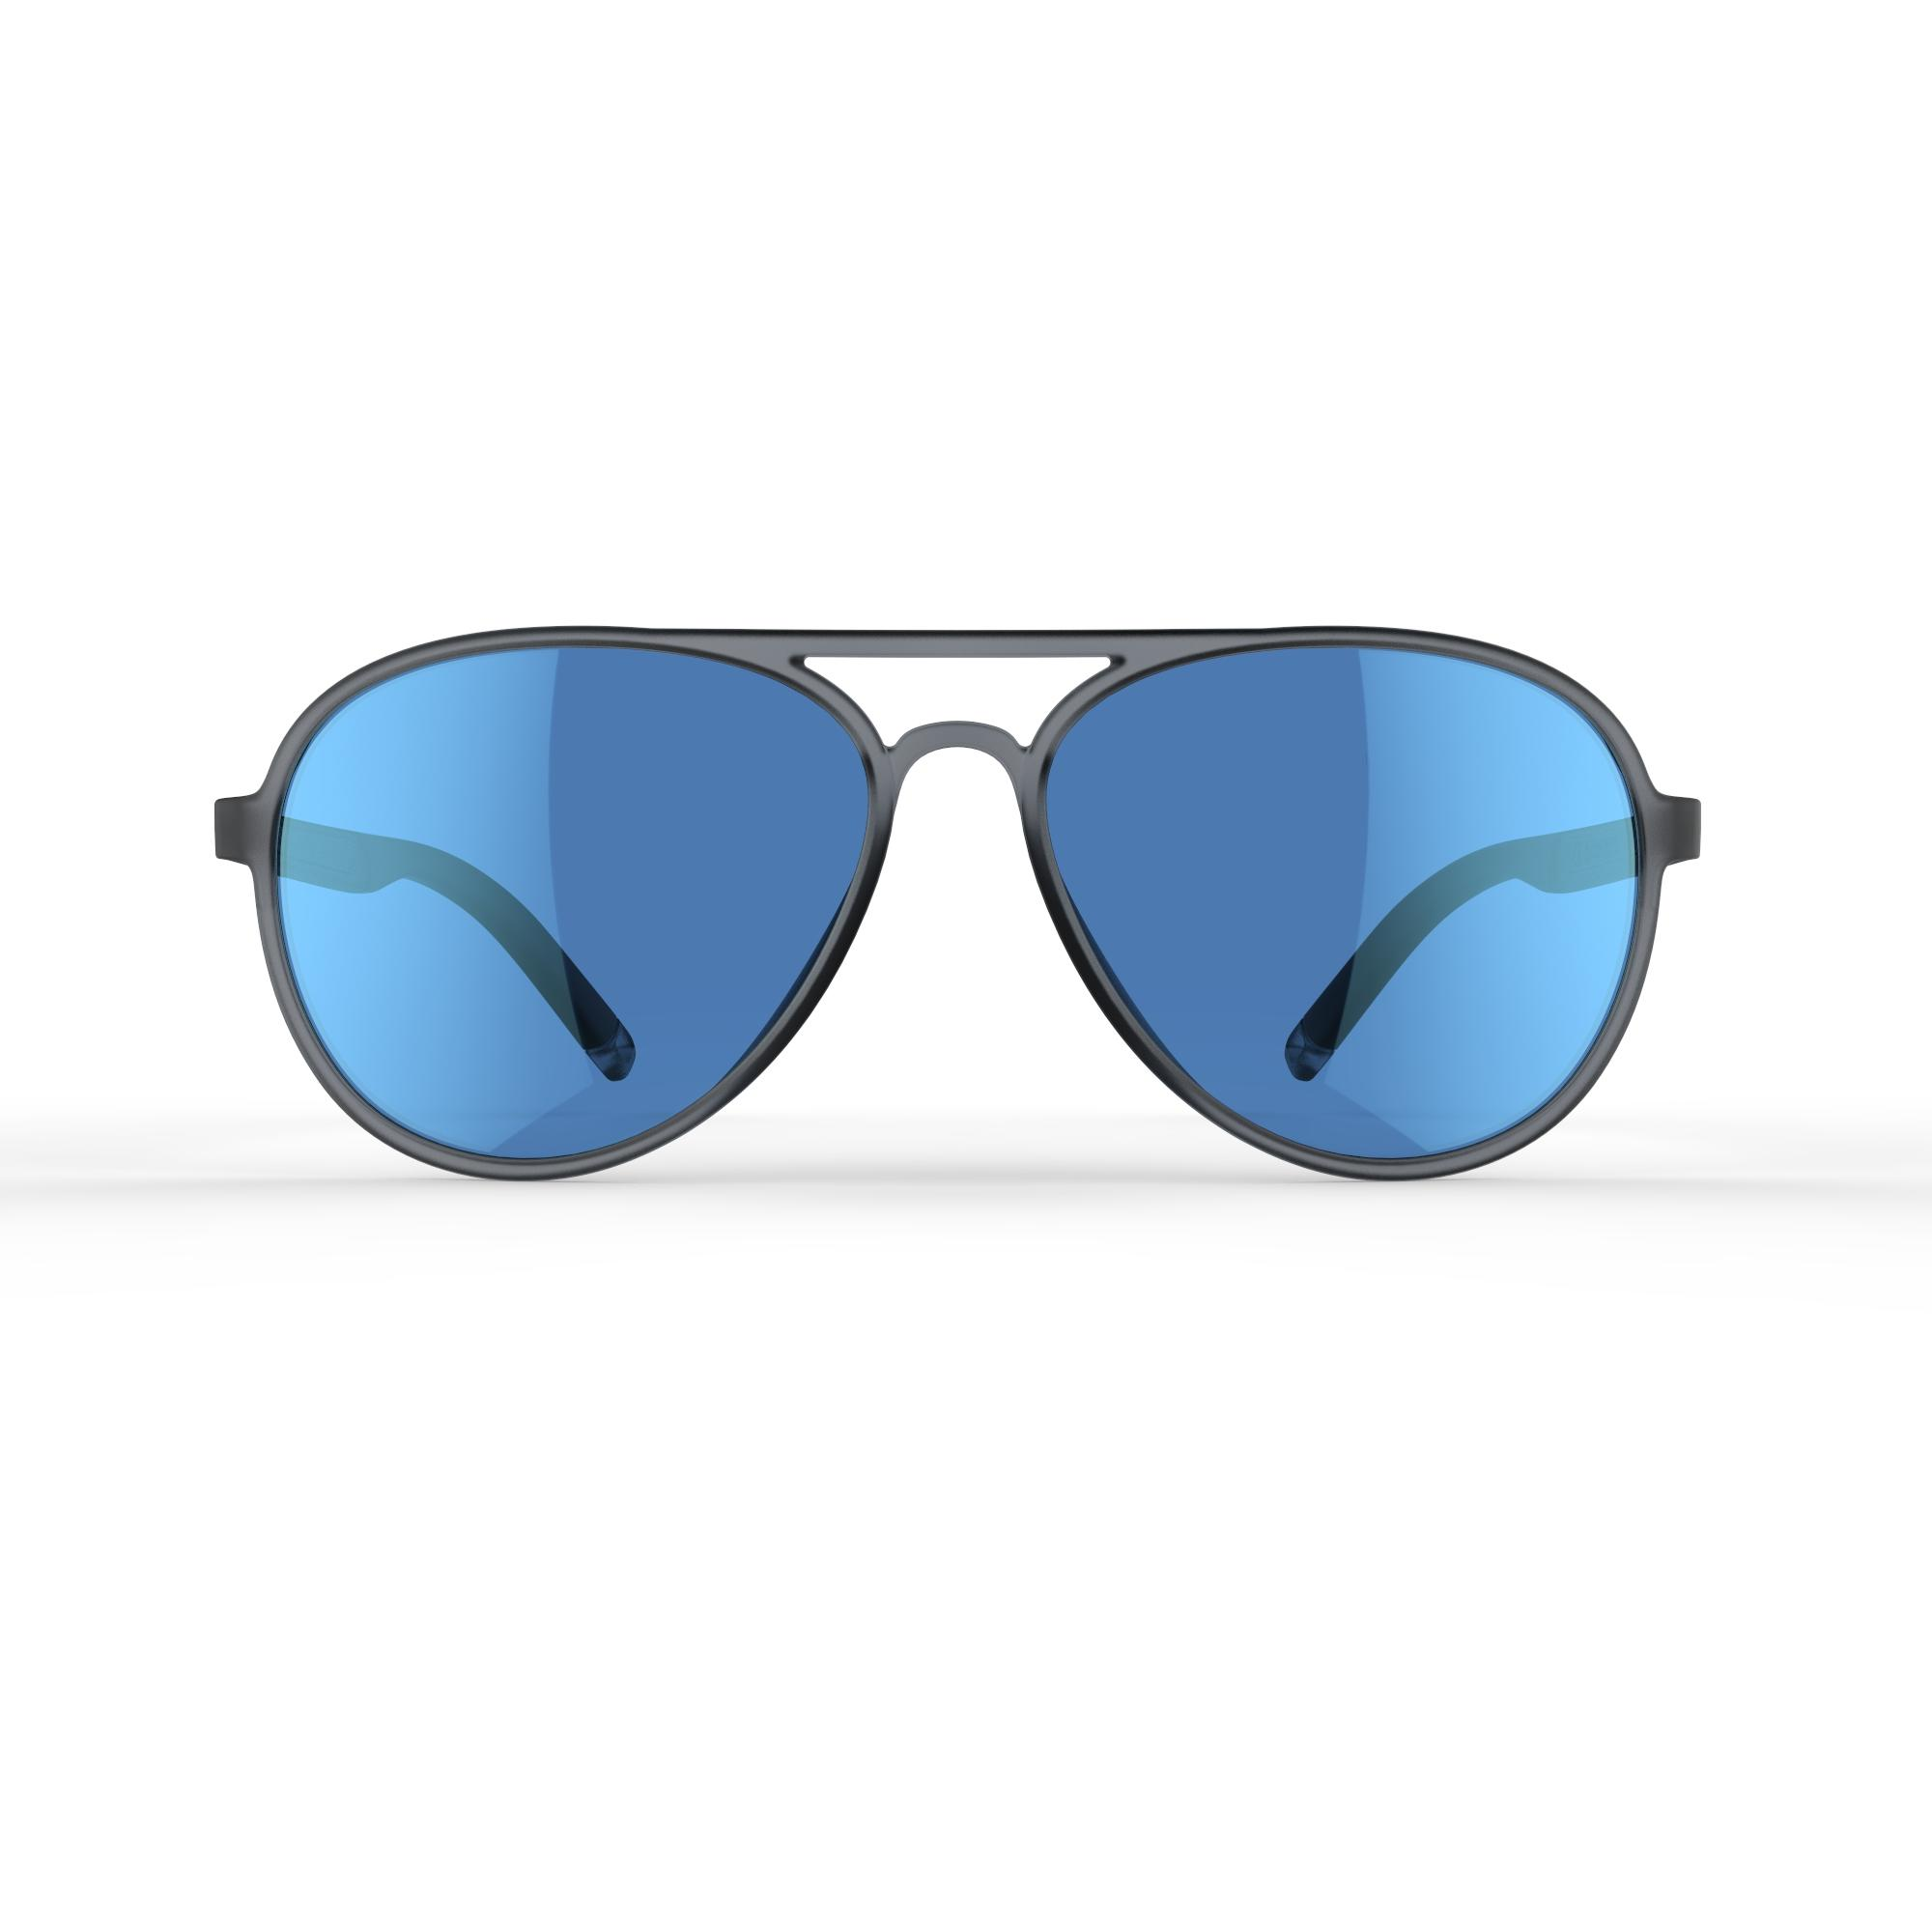 Category 3 MH 500 polarised hiking sunglasses – Black and Blue